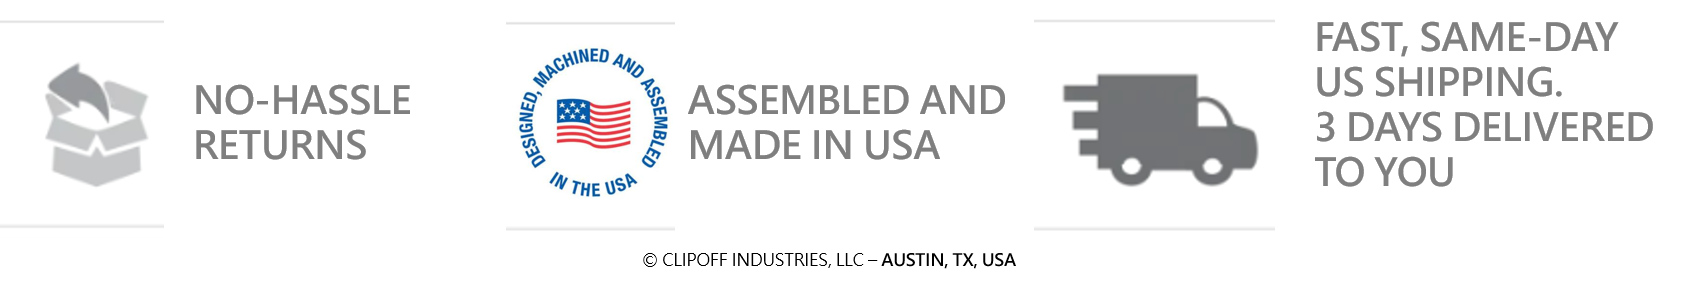 assembled and shipped form america